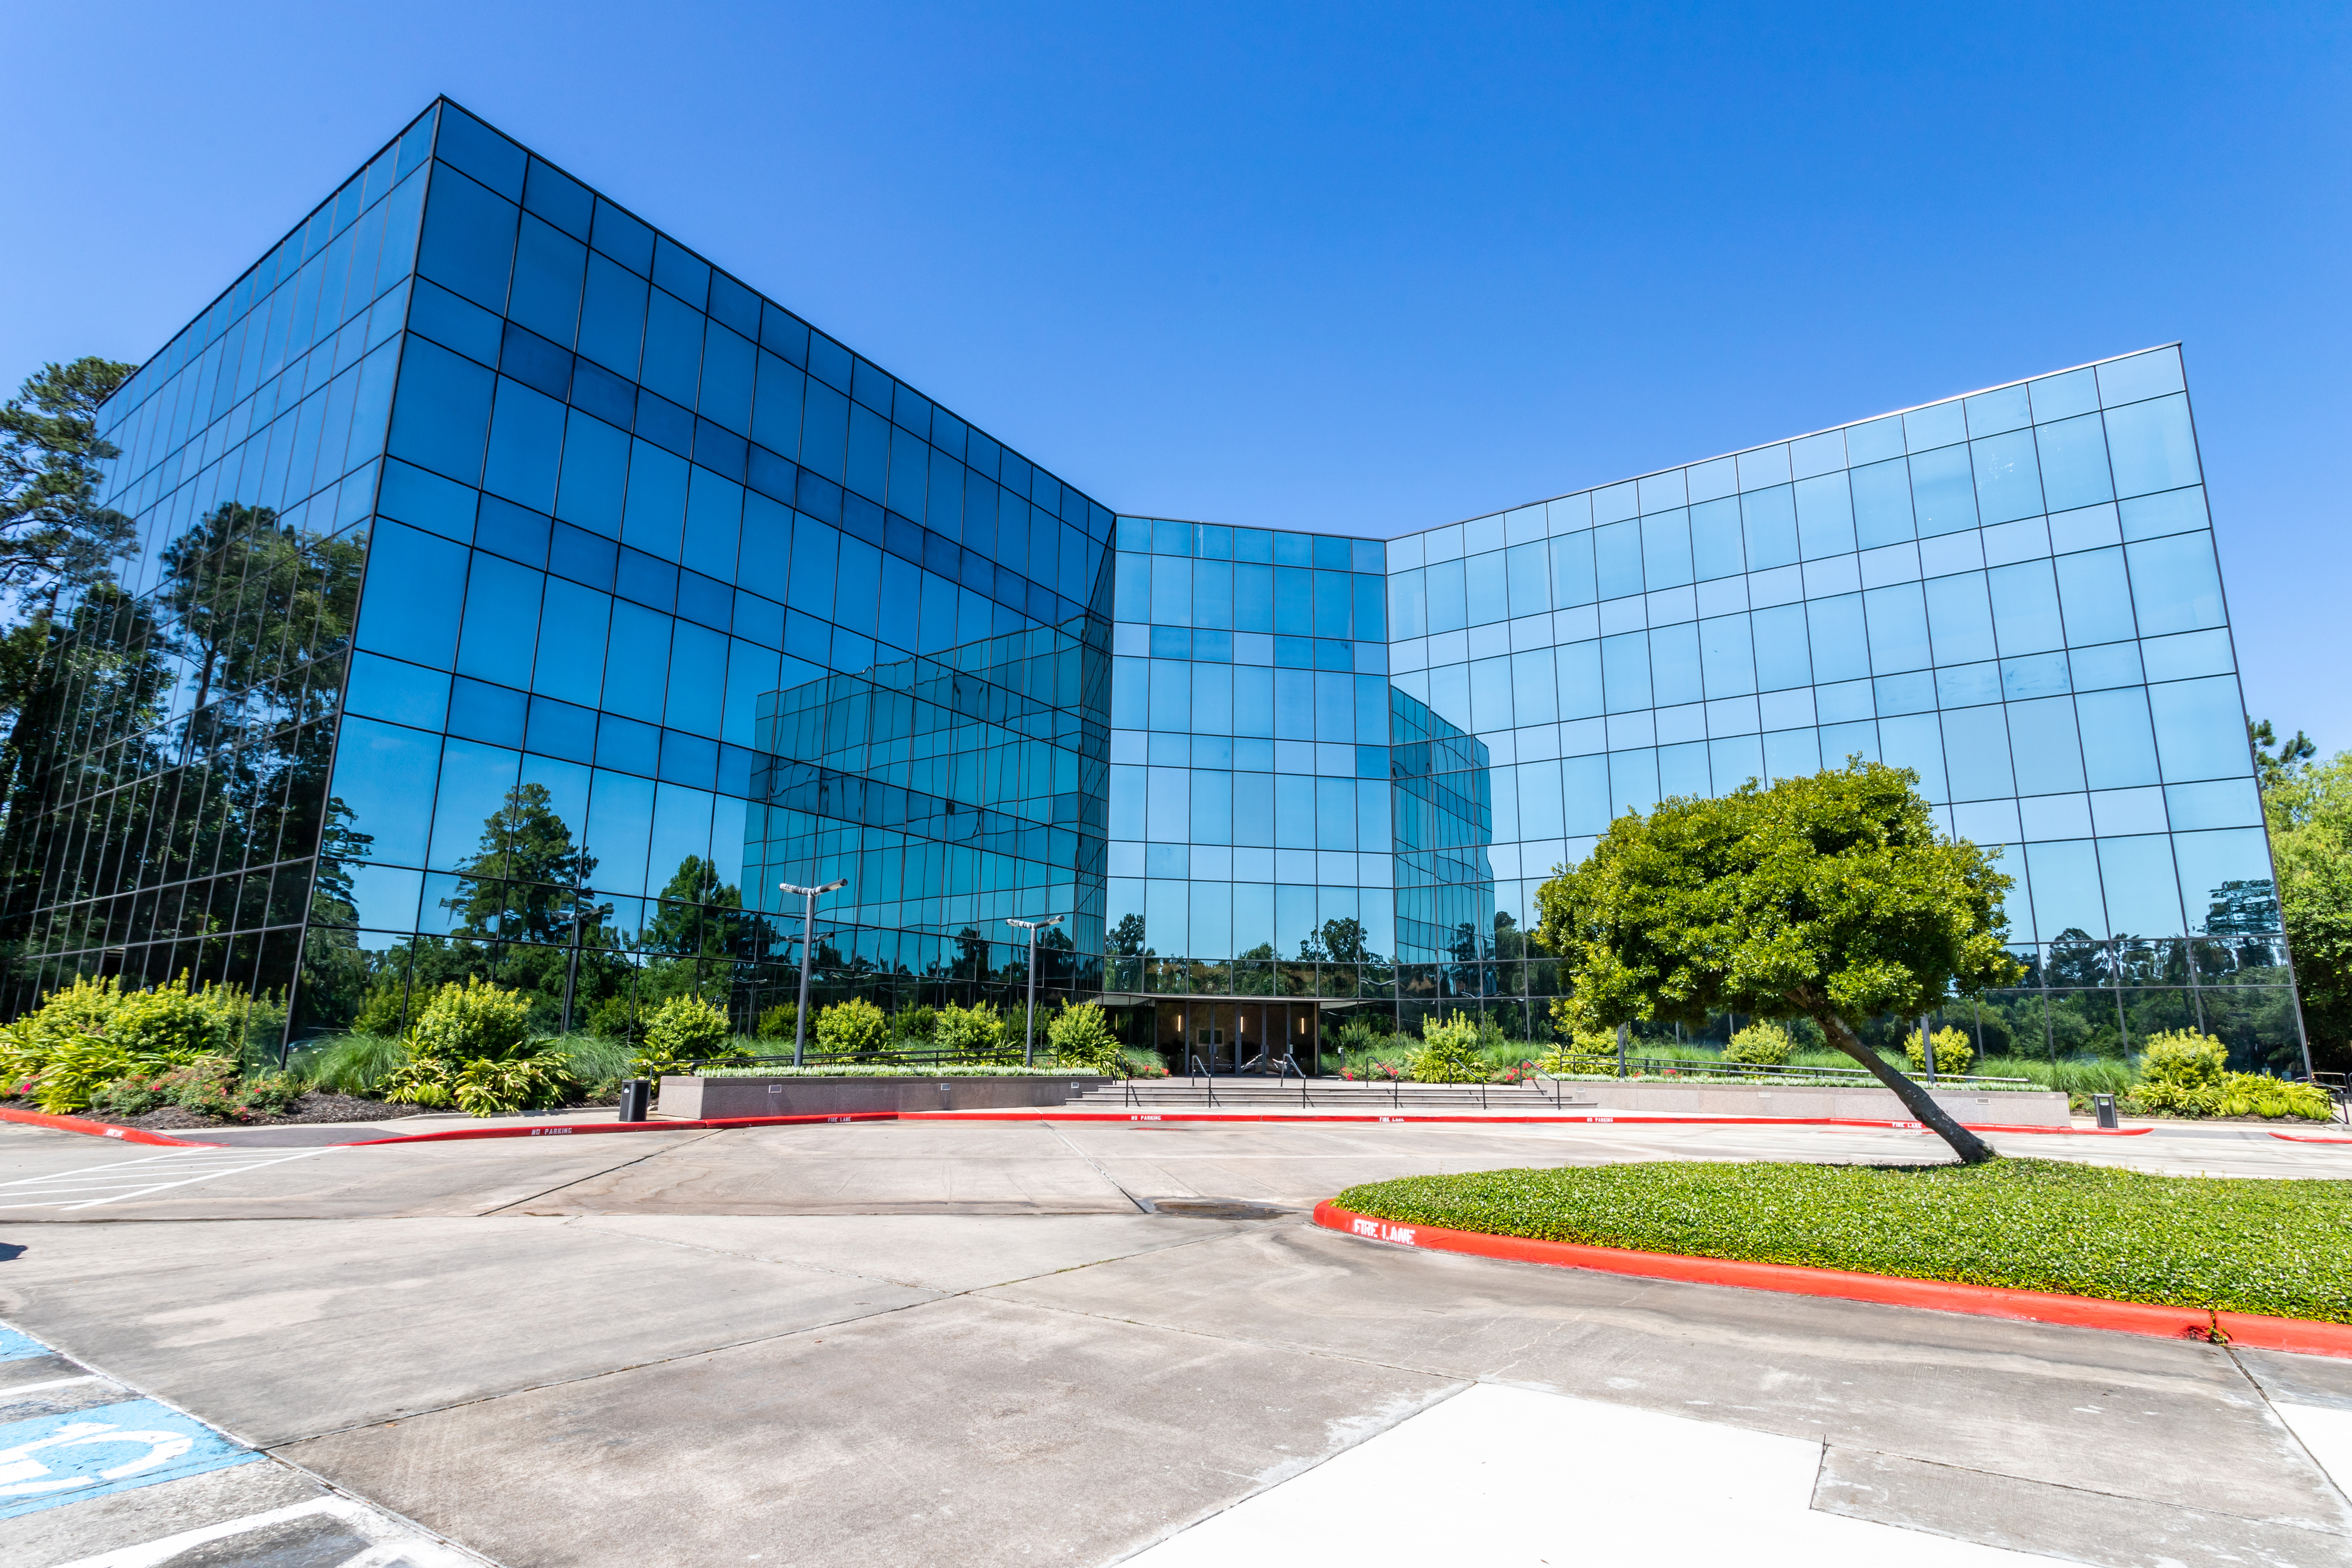 4 Things You Should Be Looking For When Choosing Commercial Real Estate